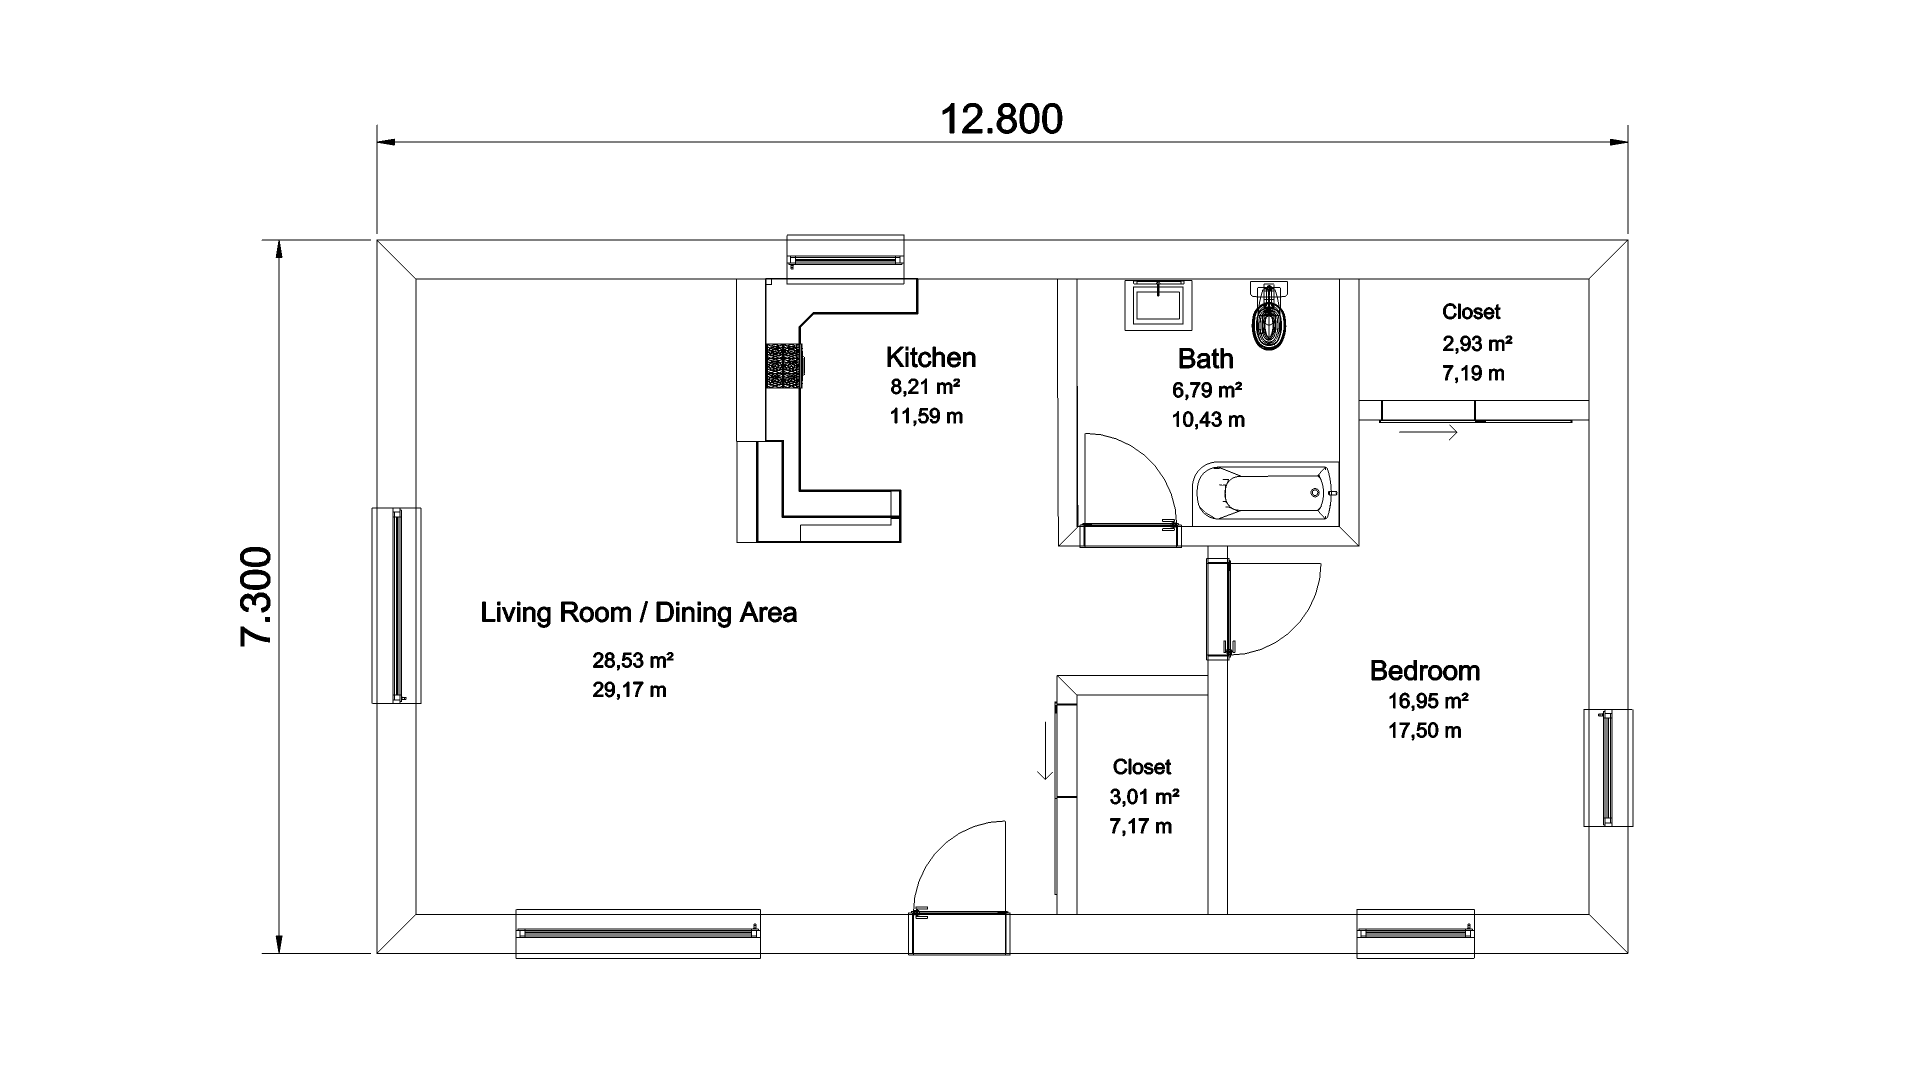 Creating floor plans for real estate listings pcon blog for Roommate floor plan